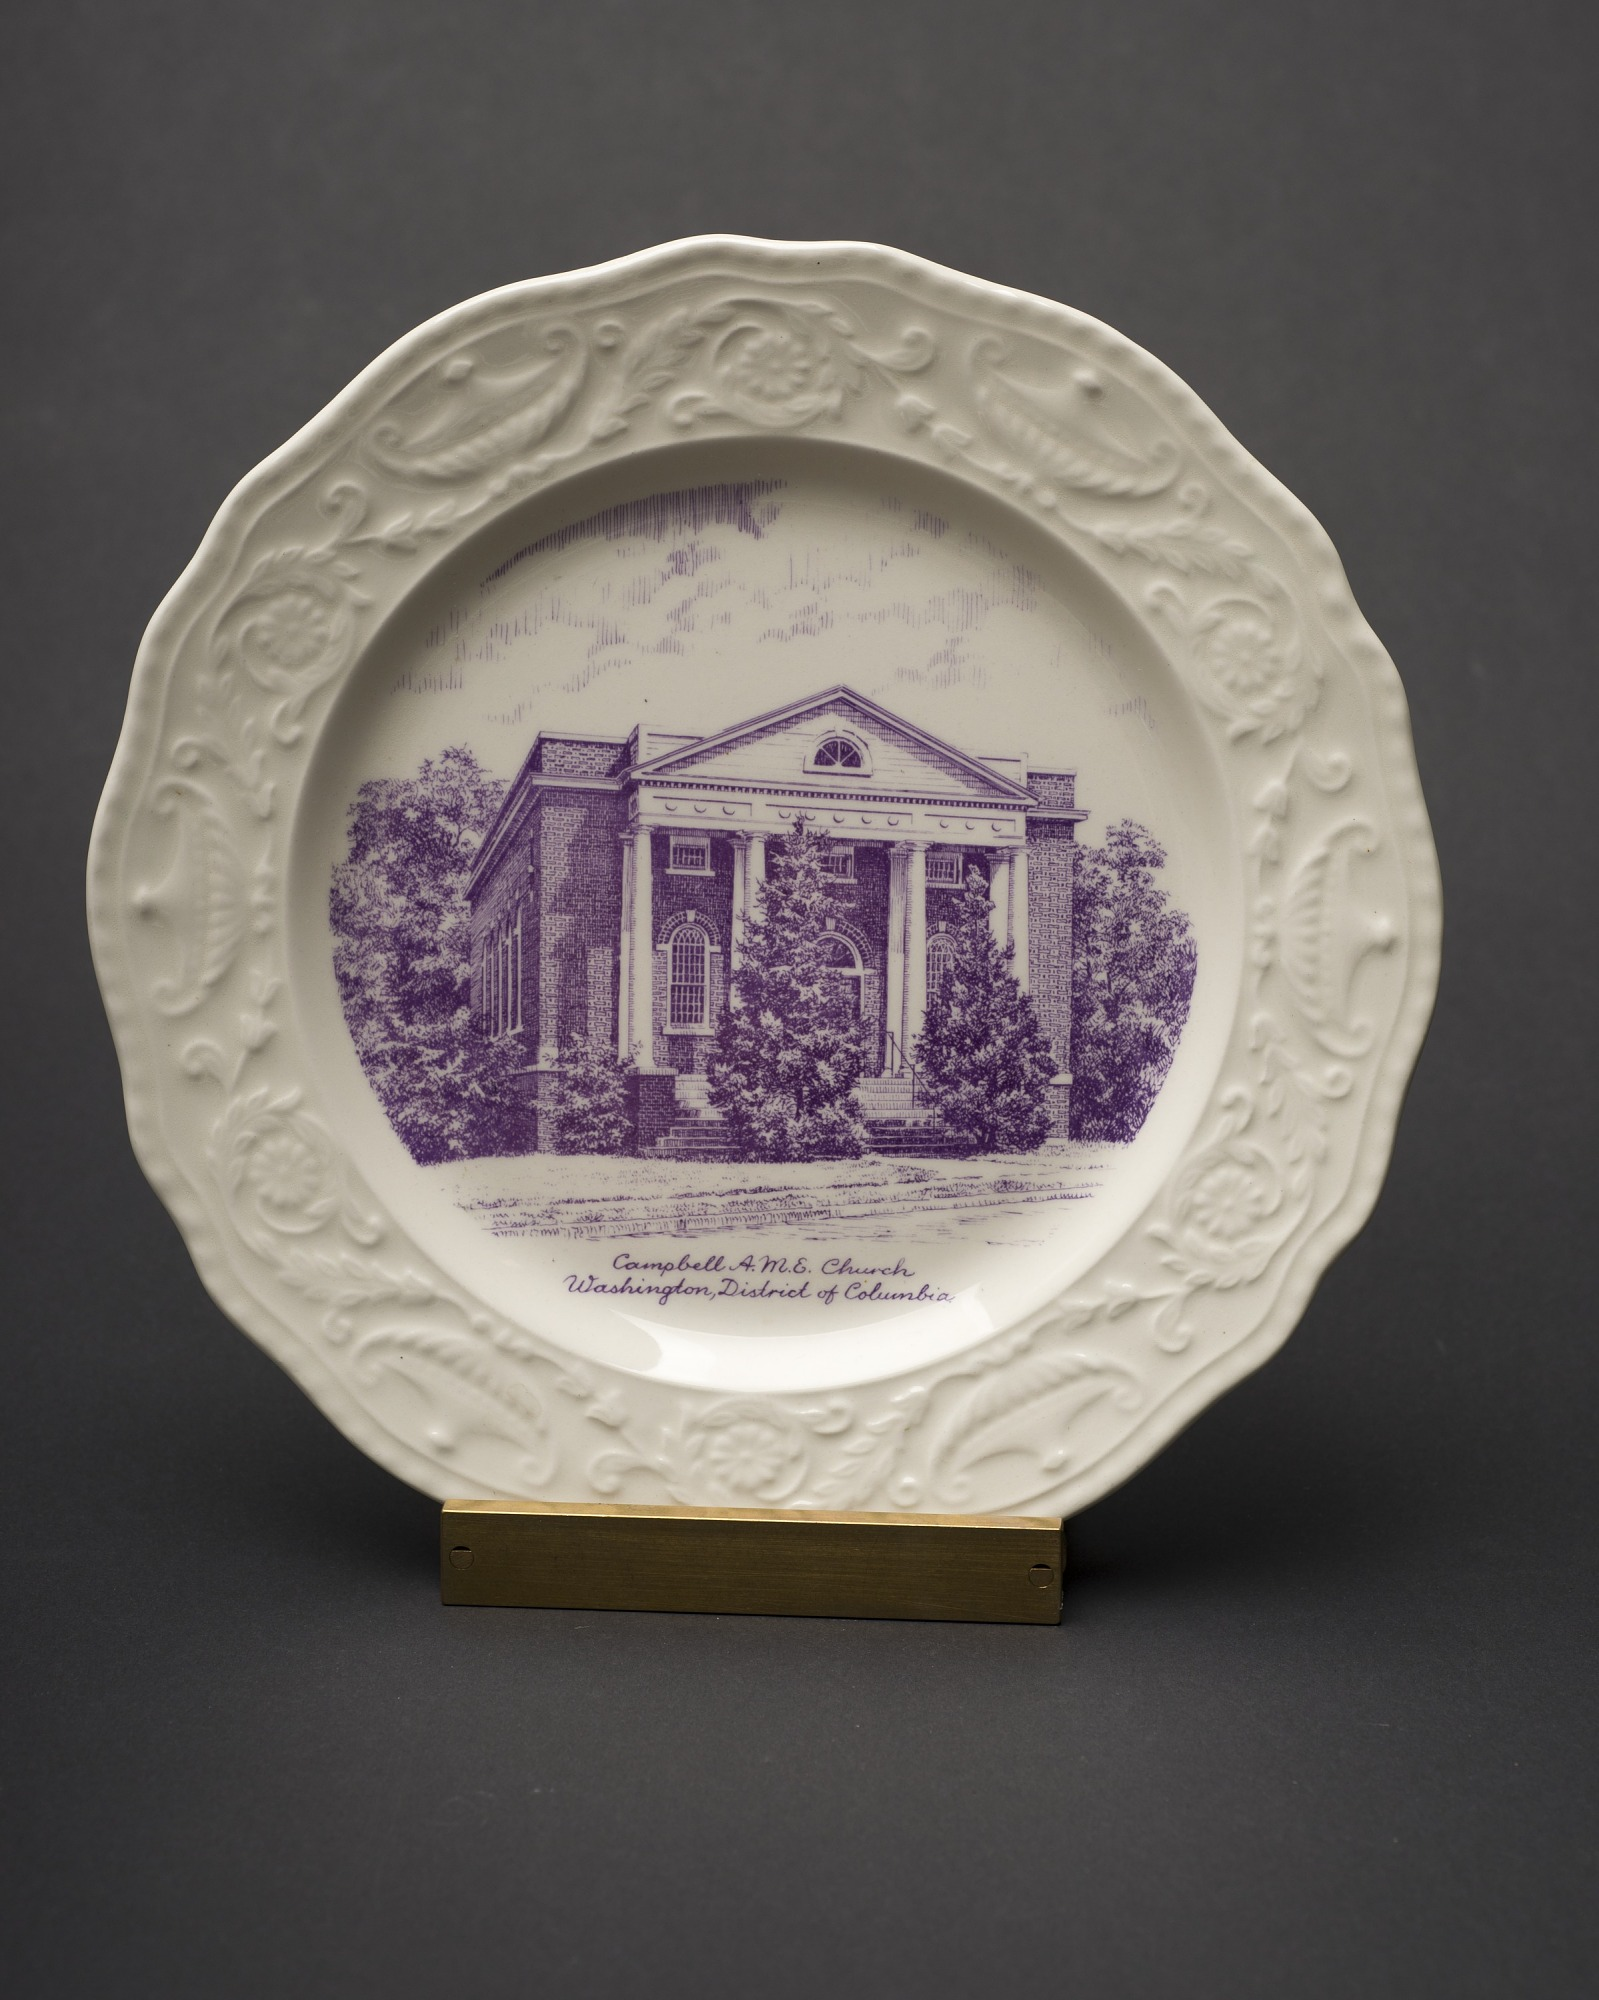 Decorative Plate of Campbell A.M.E. Church